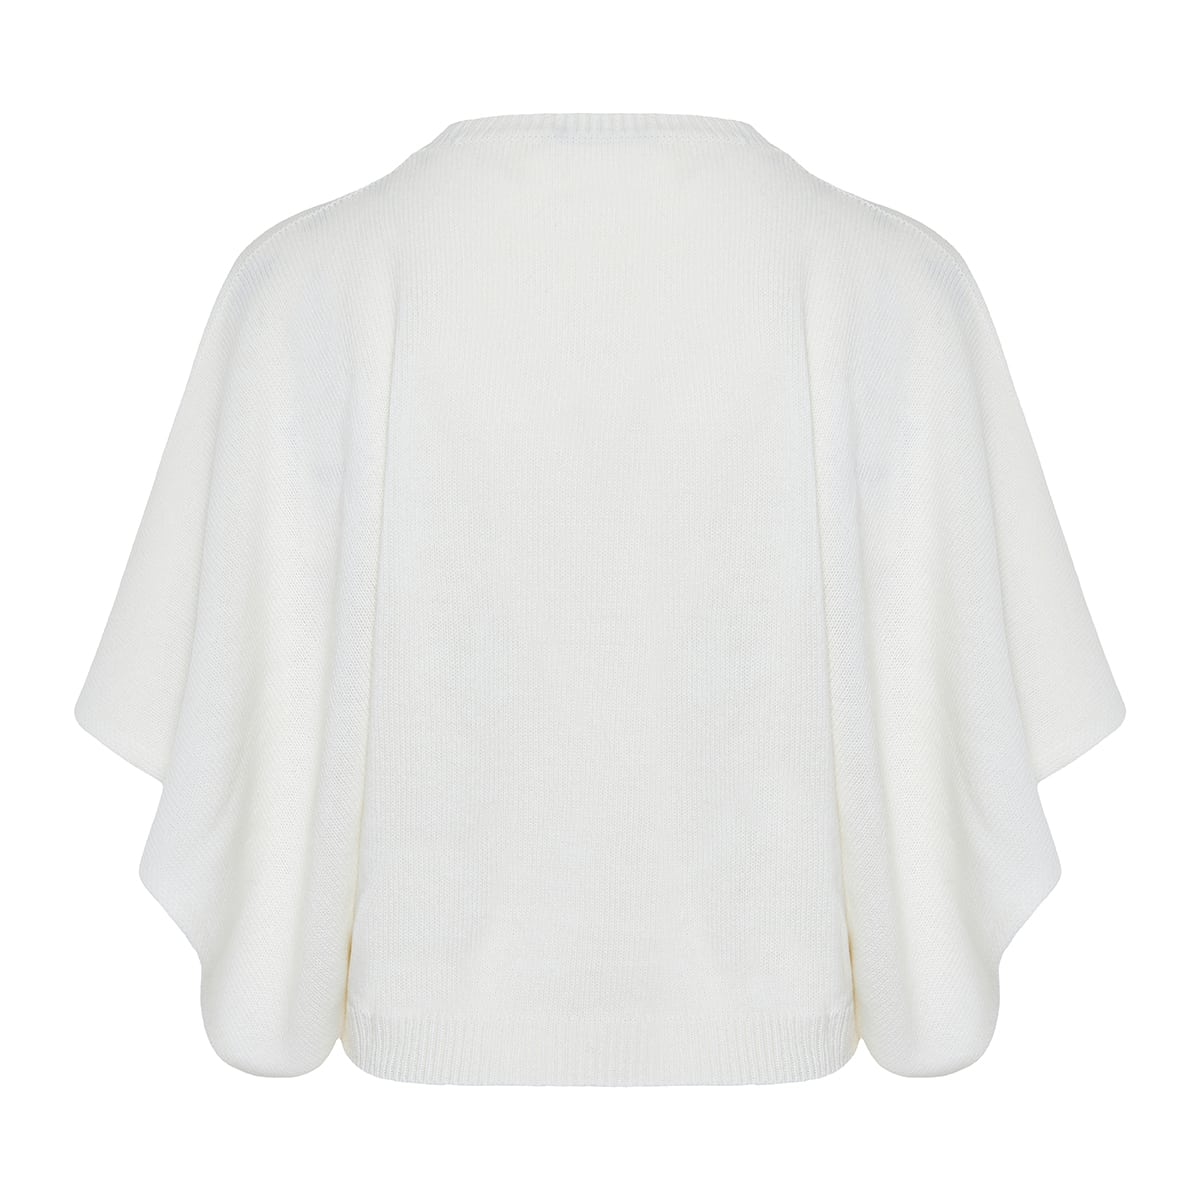 Flared-sleeve cashmere sweater